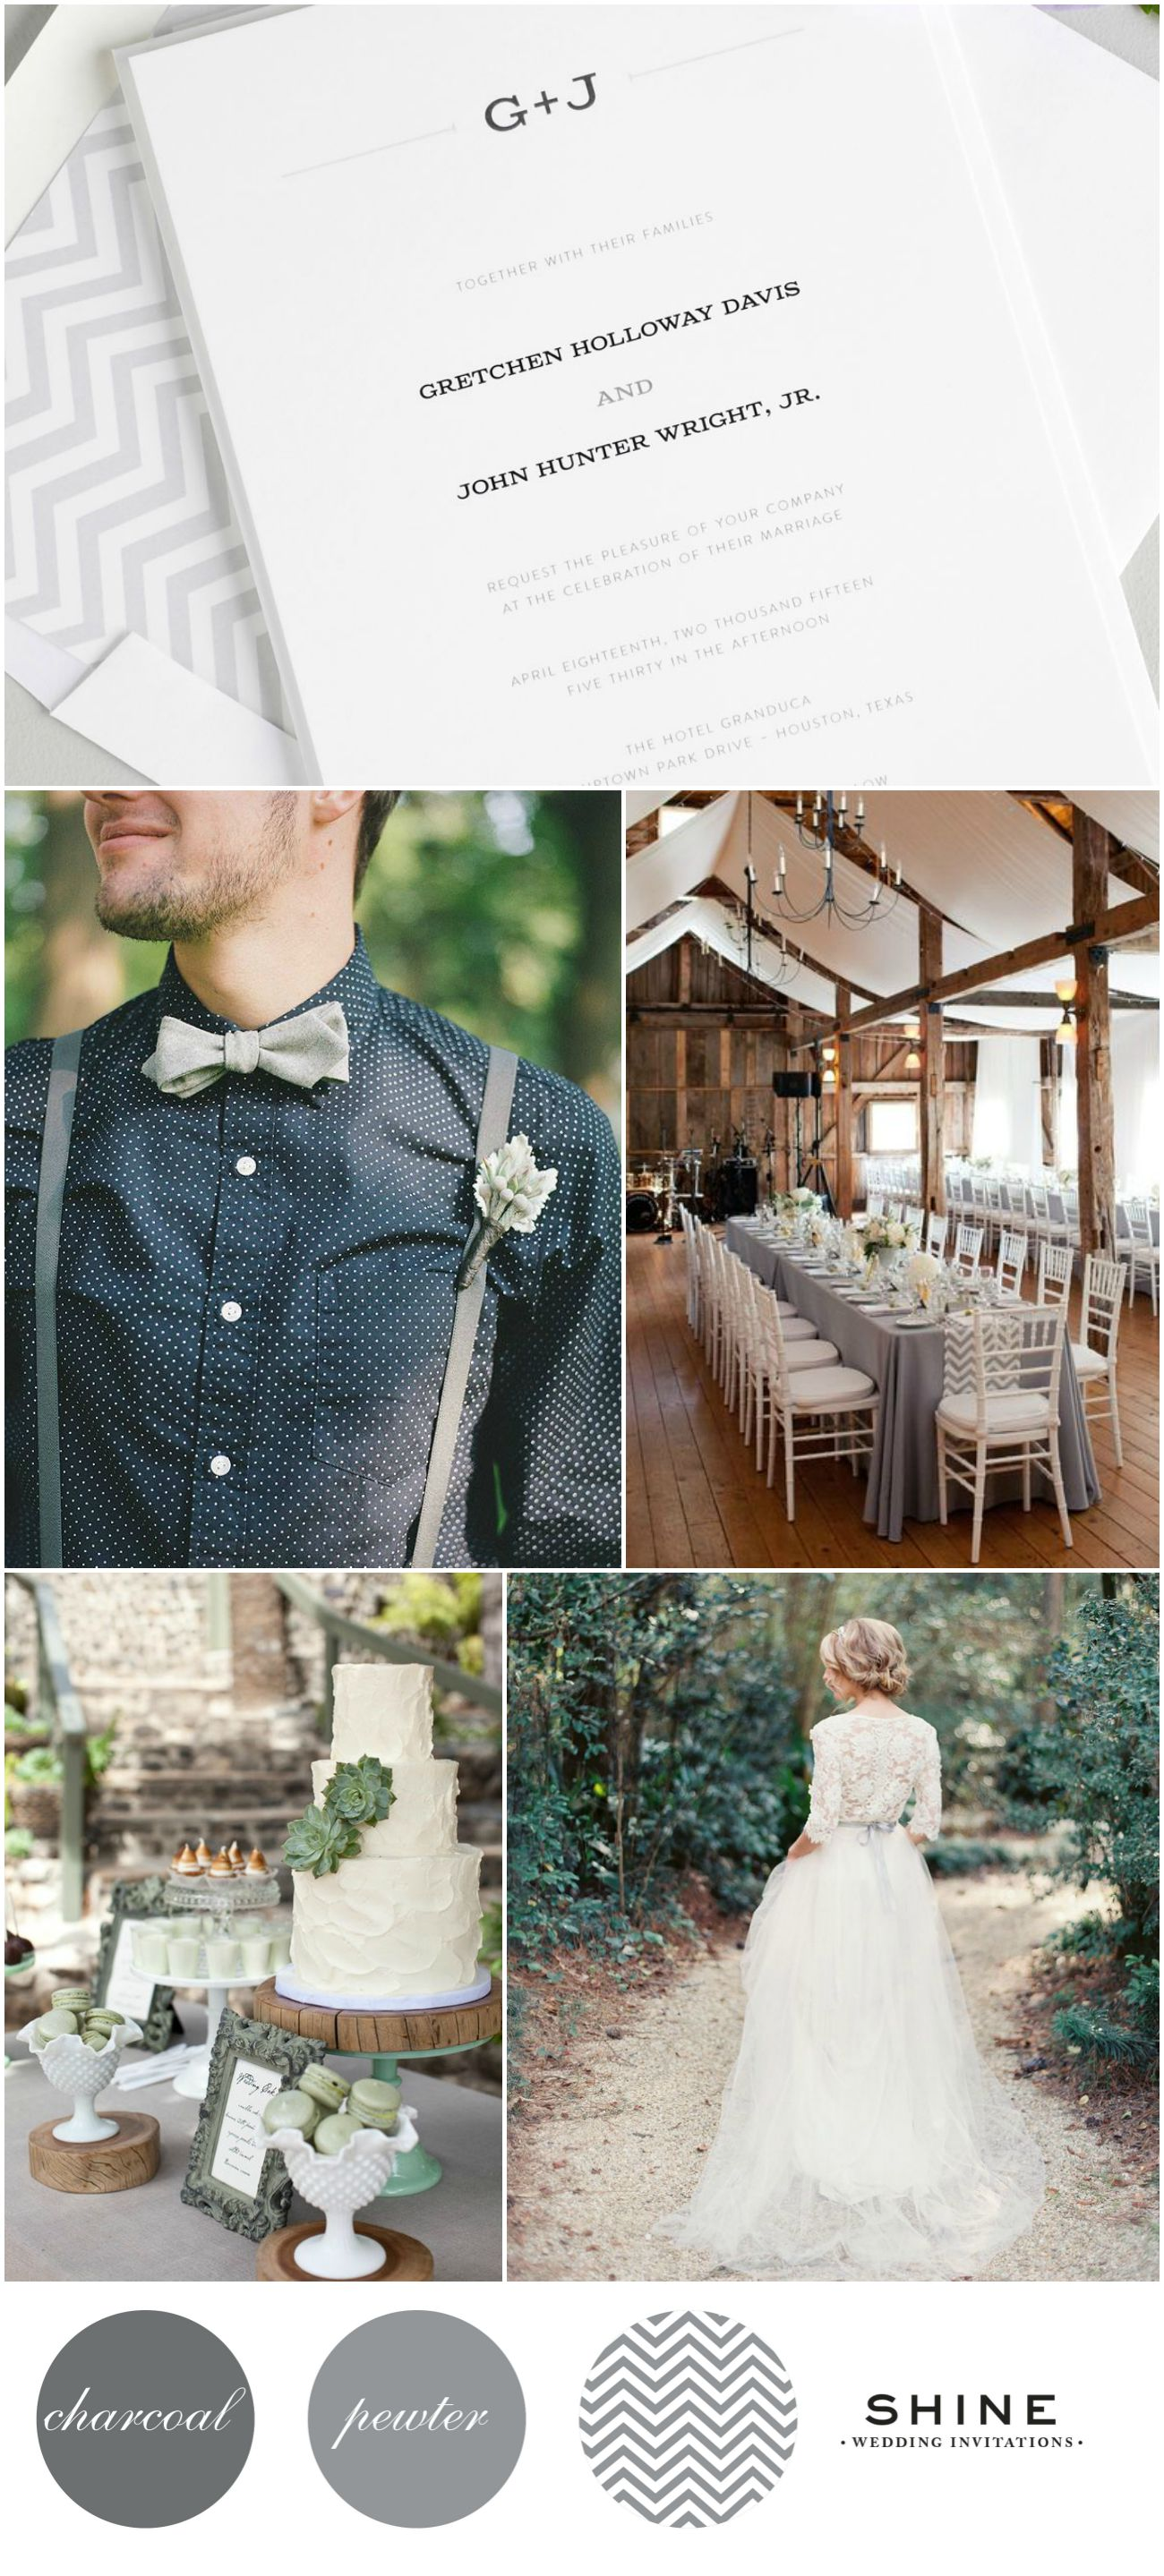 Rustic Wedding Inspiration with succulents and chevron accents